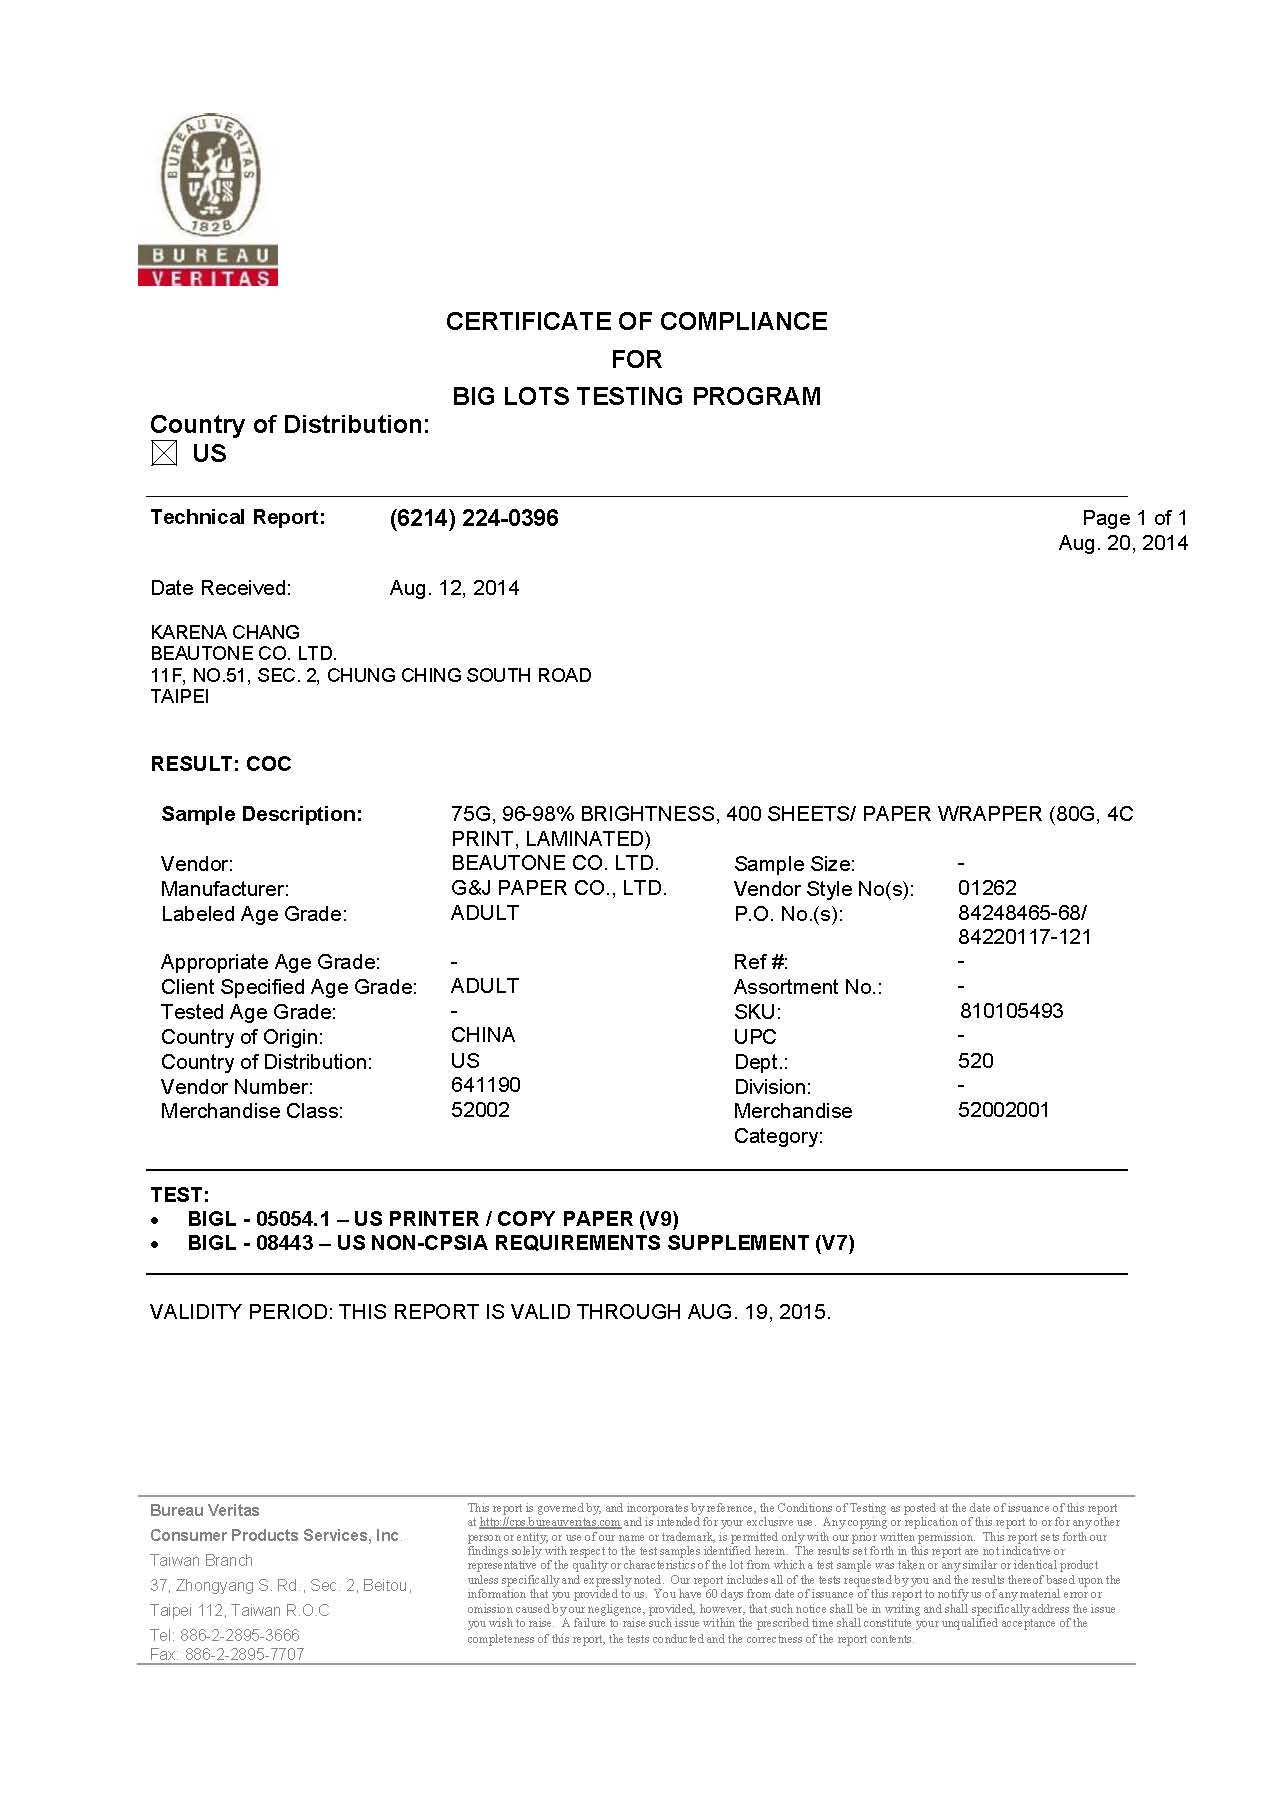 CERTIFICATE OF COMPLIANCE FOR BIG LOTS TESTING PROGRAM